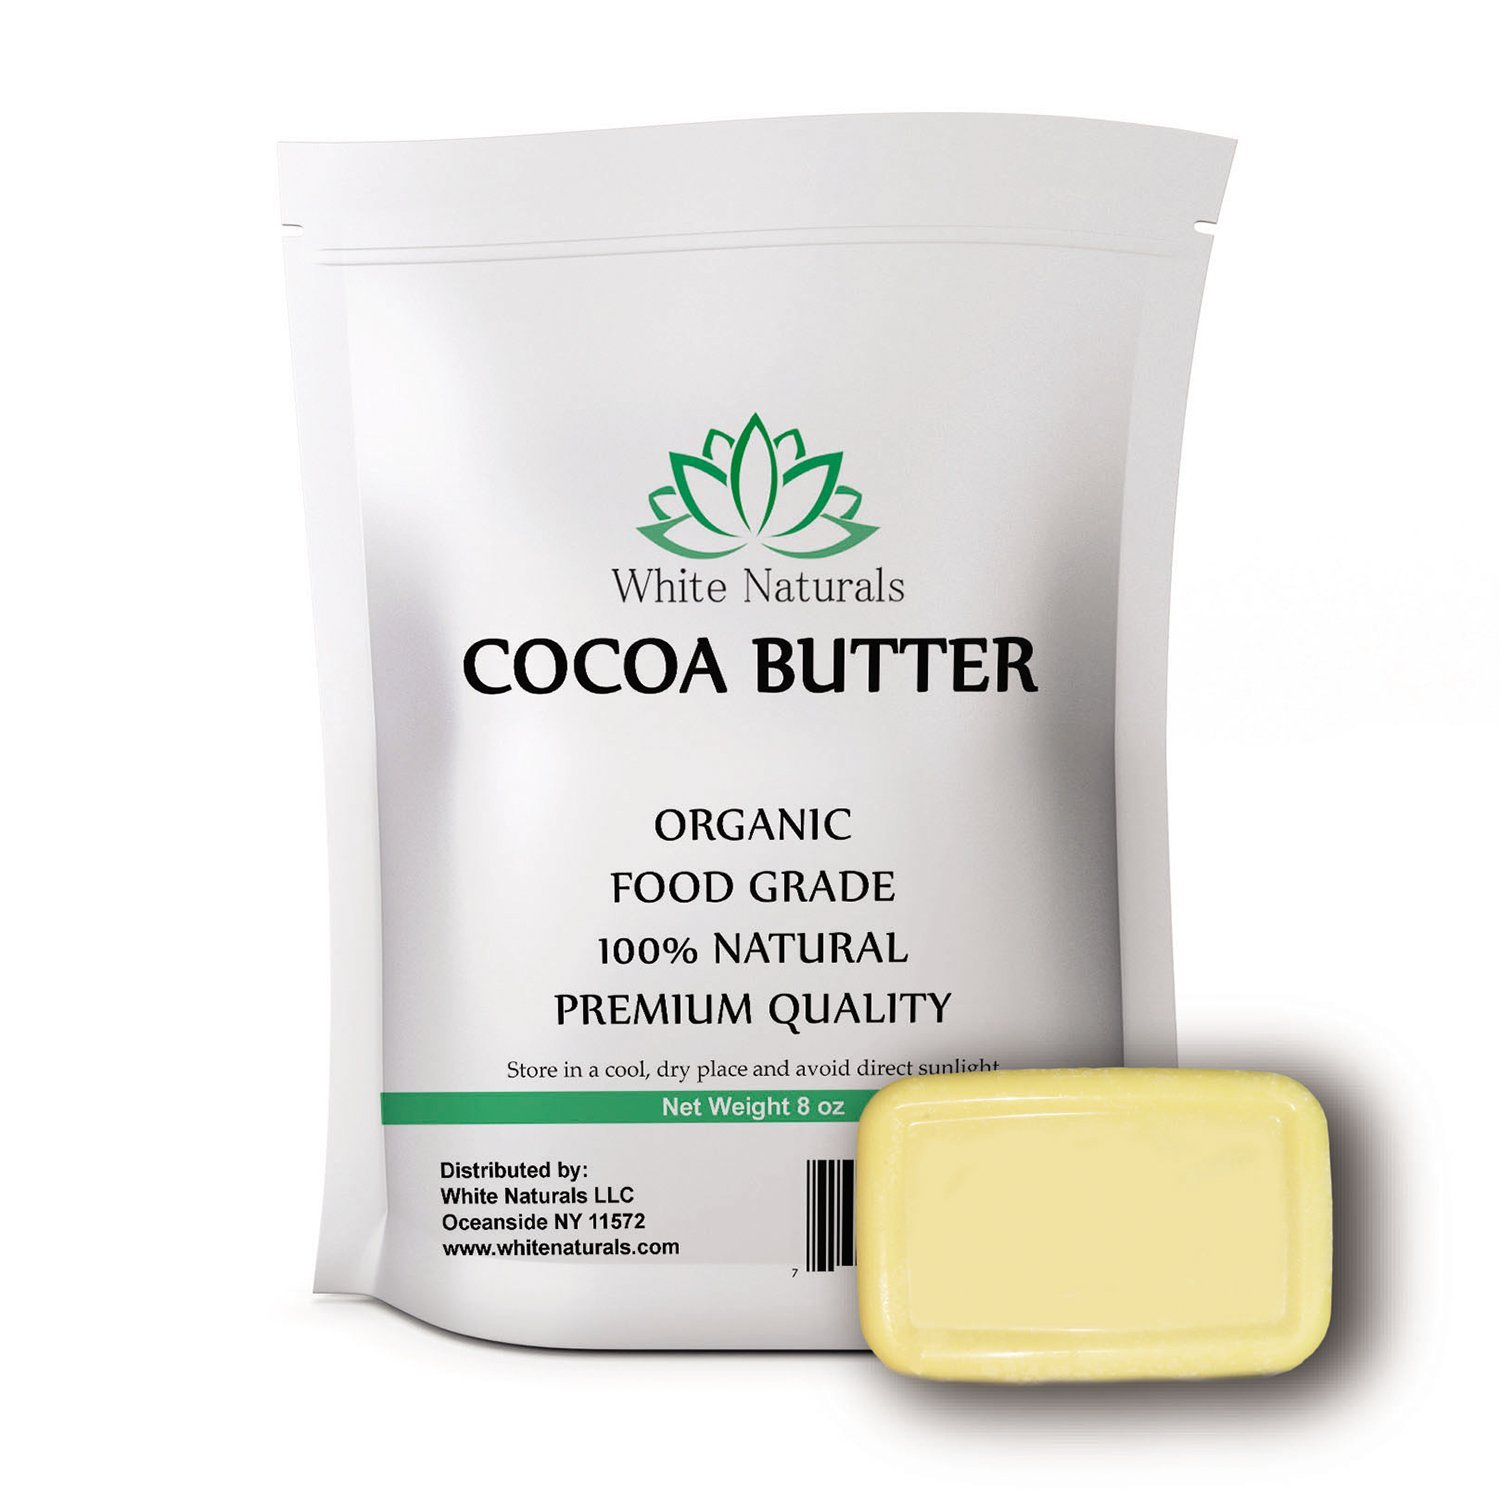 Organic Food Grade Cocoa Butter 8oz ,Unrefined, Raw, 100% Pure, Natural - For DIY Recipes, Body Butters, Soap Making, Lotion, Shampoo, Lip Balm By White Naturals